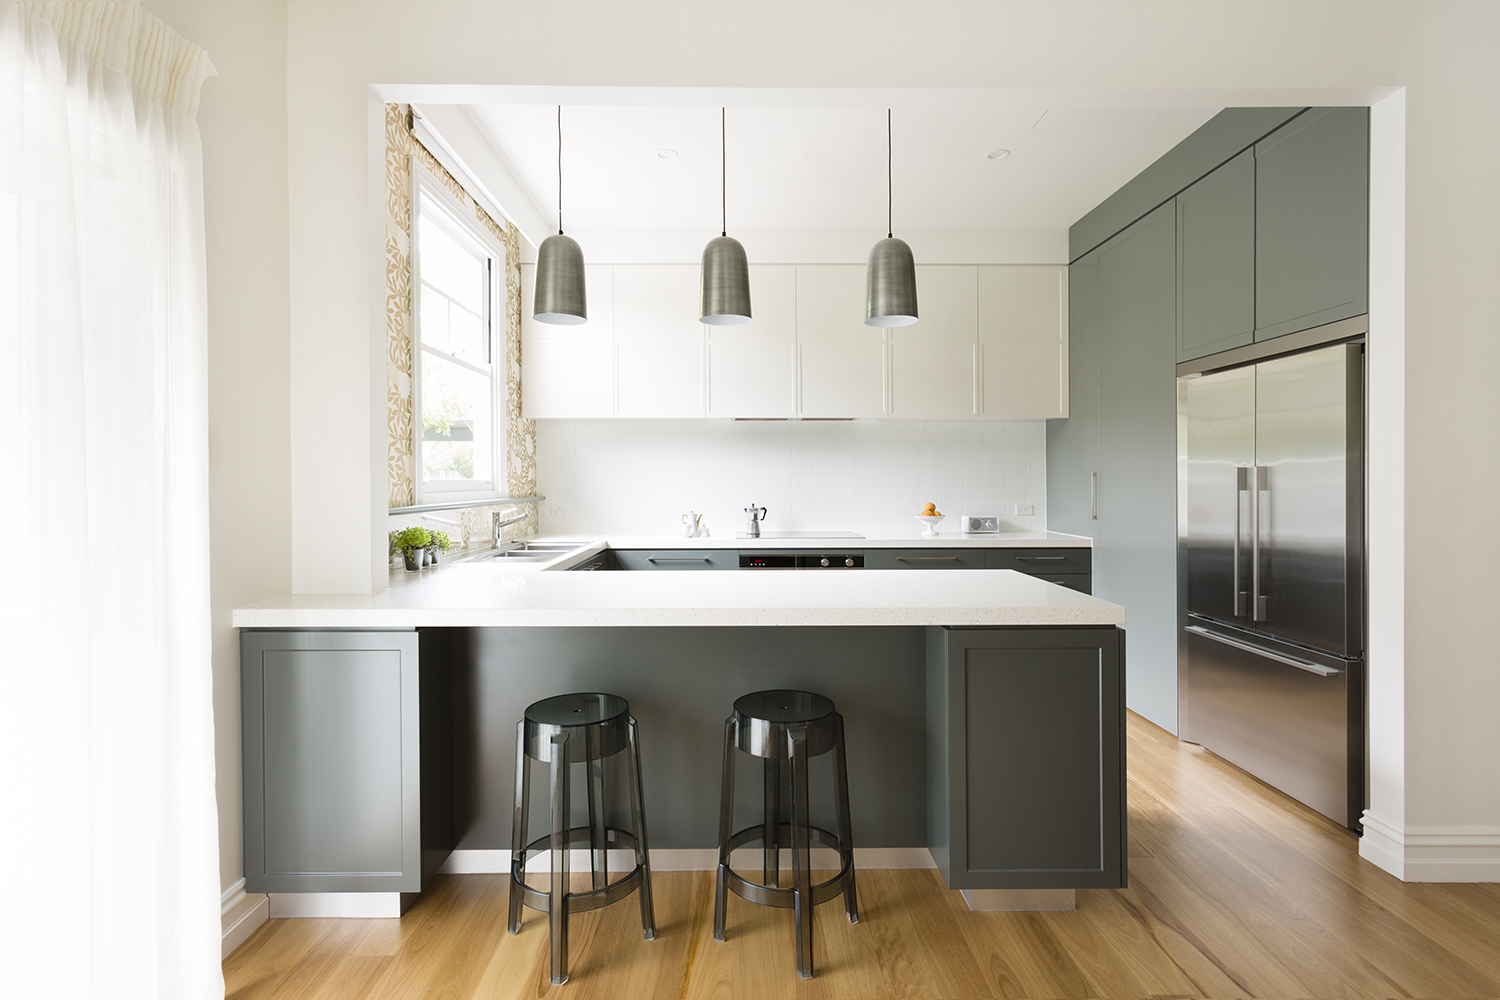 Kitchen renovation Melbourne design inspiration